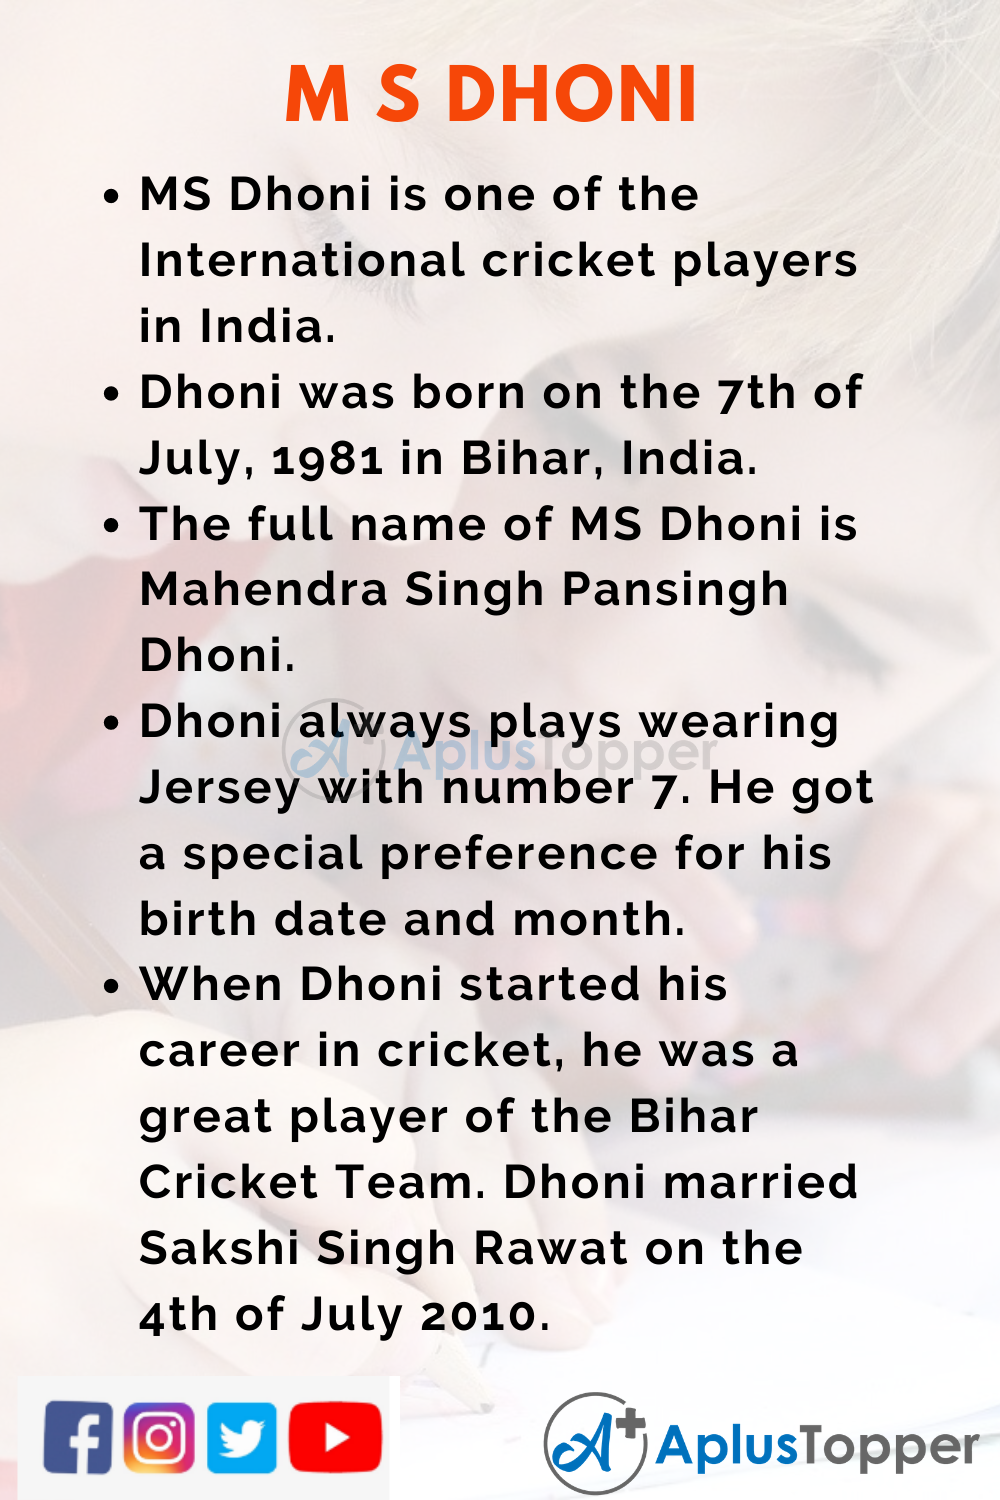 10 Lines on MS Dhoni for Kids